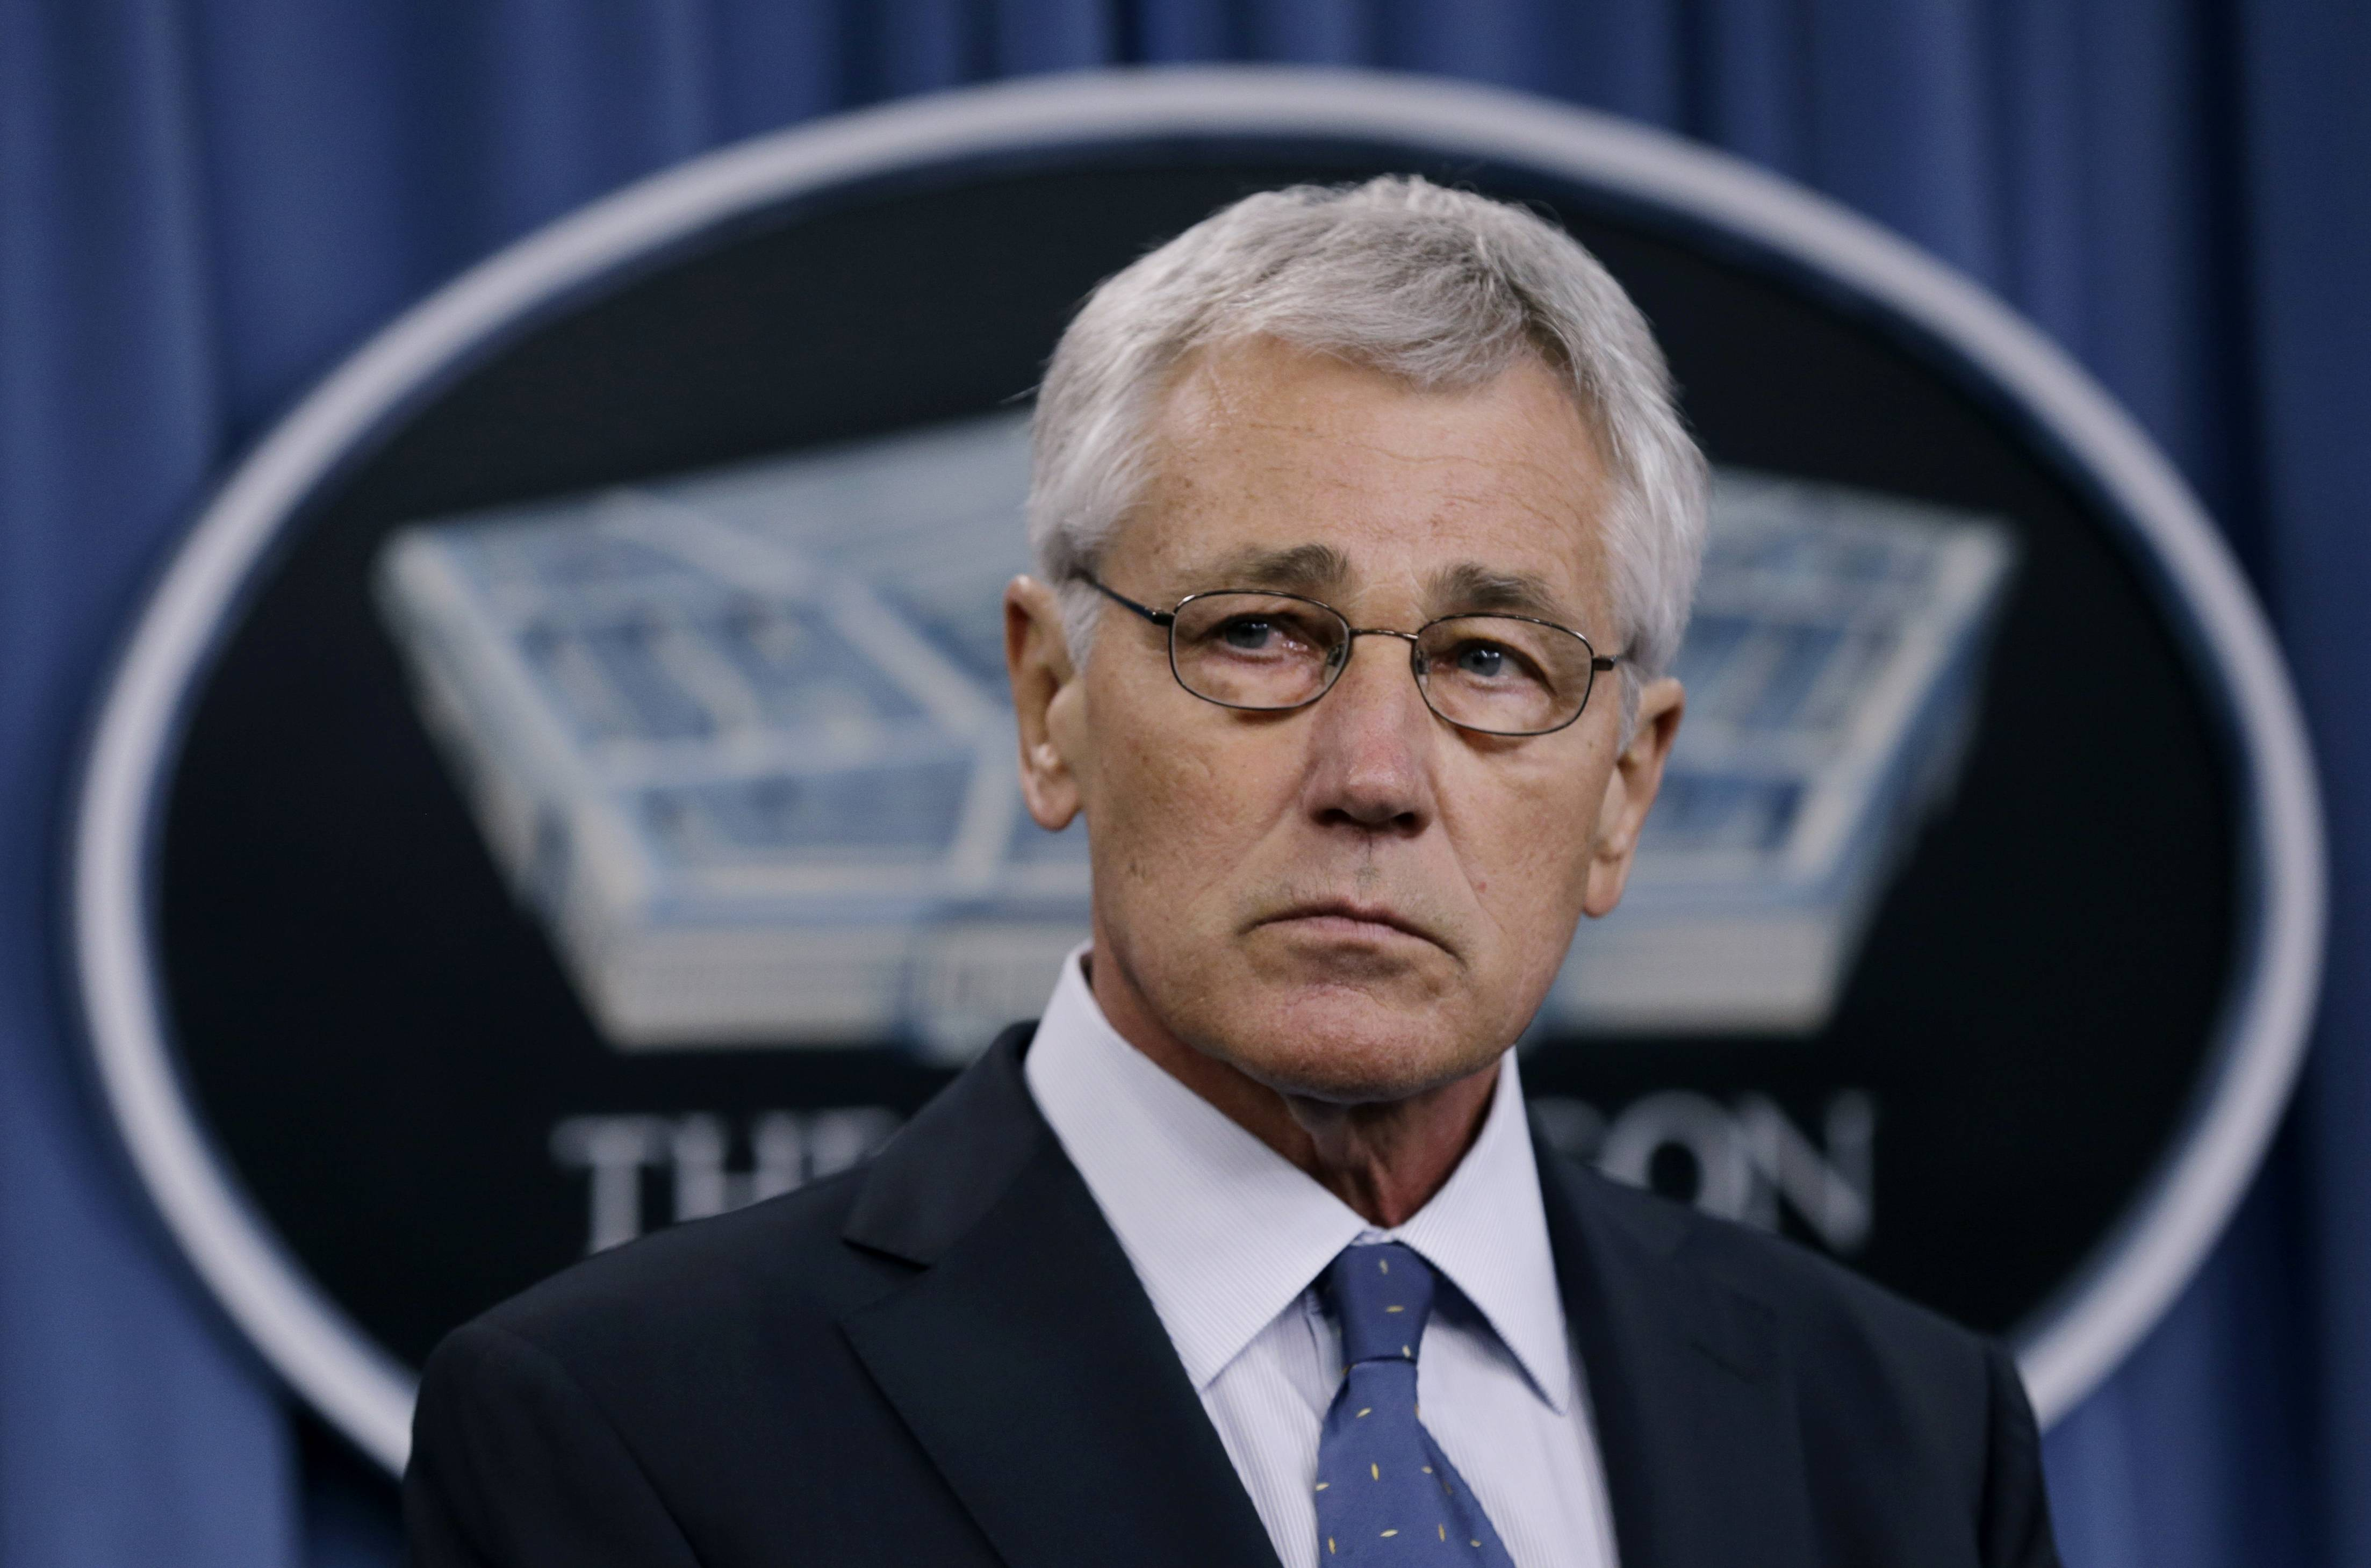 Defense Secretary Chuck Hagel outlined a five-year Pentagon budget Monday that would shrink Army forces to fewer than before the attacks of Sept. 11, 2001, while retiring older weapons including the U-2 spy plane and the A-10 attack aircraft.